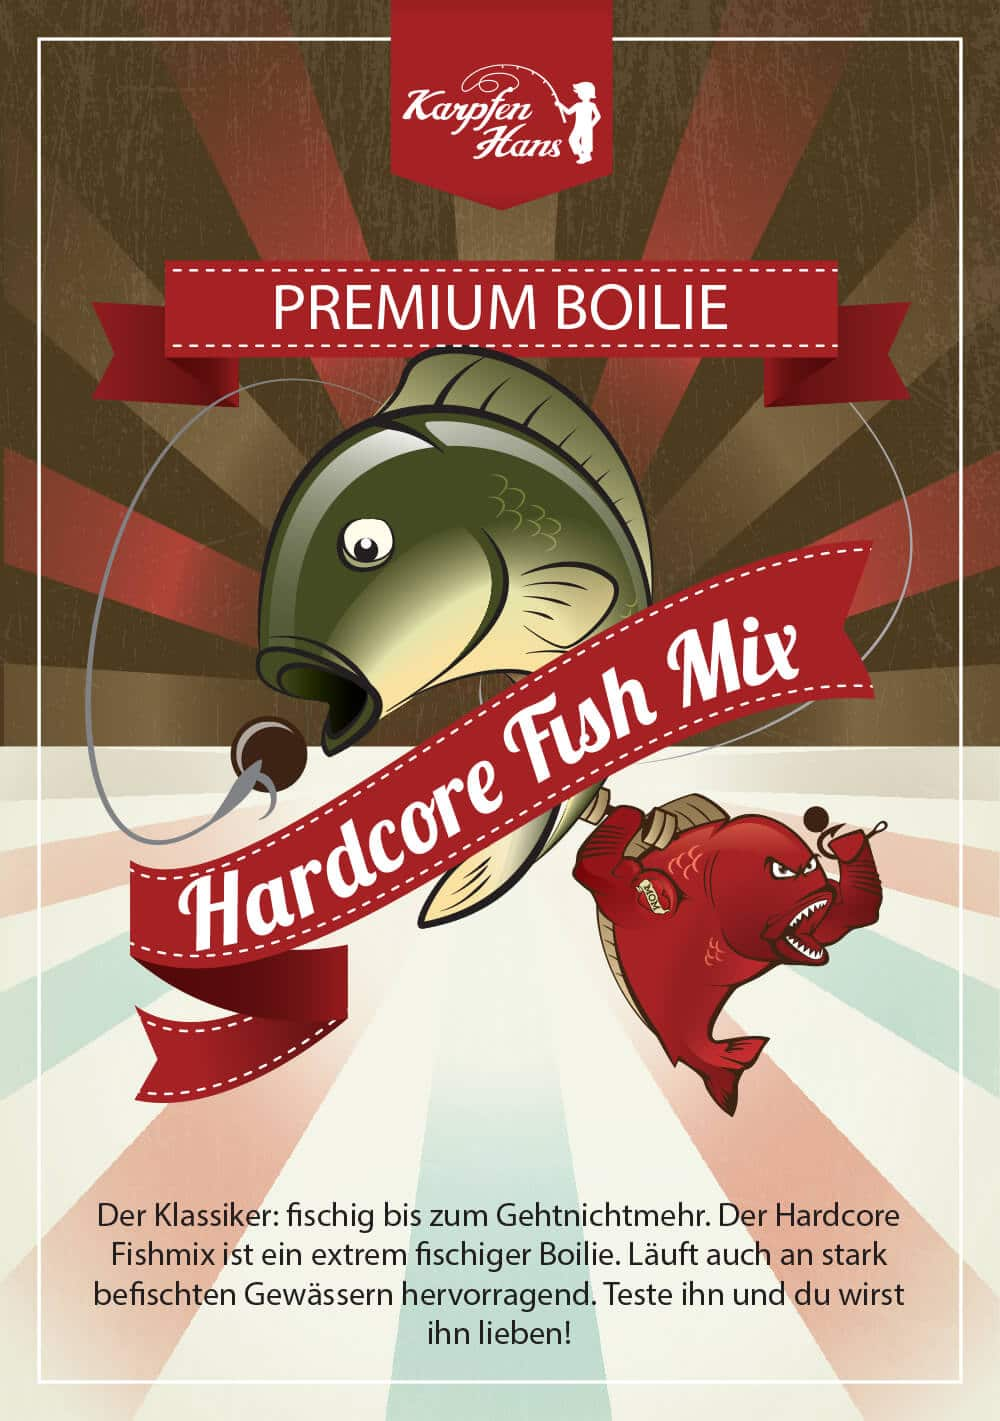 Hardcore Fish Mix